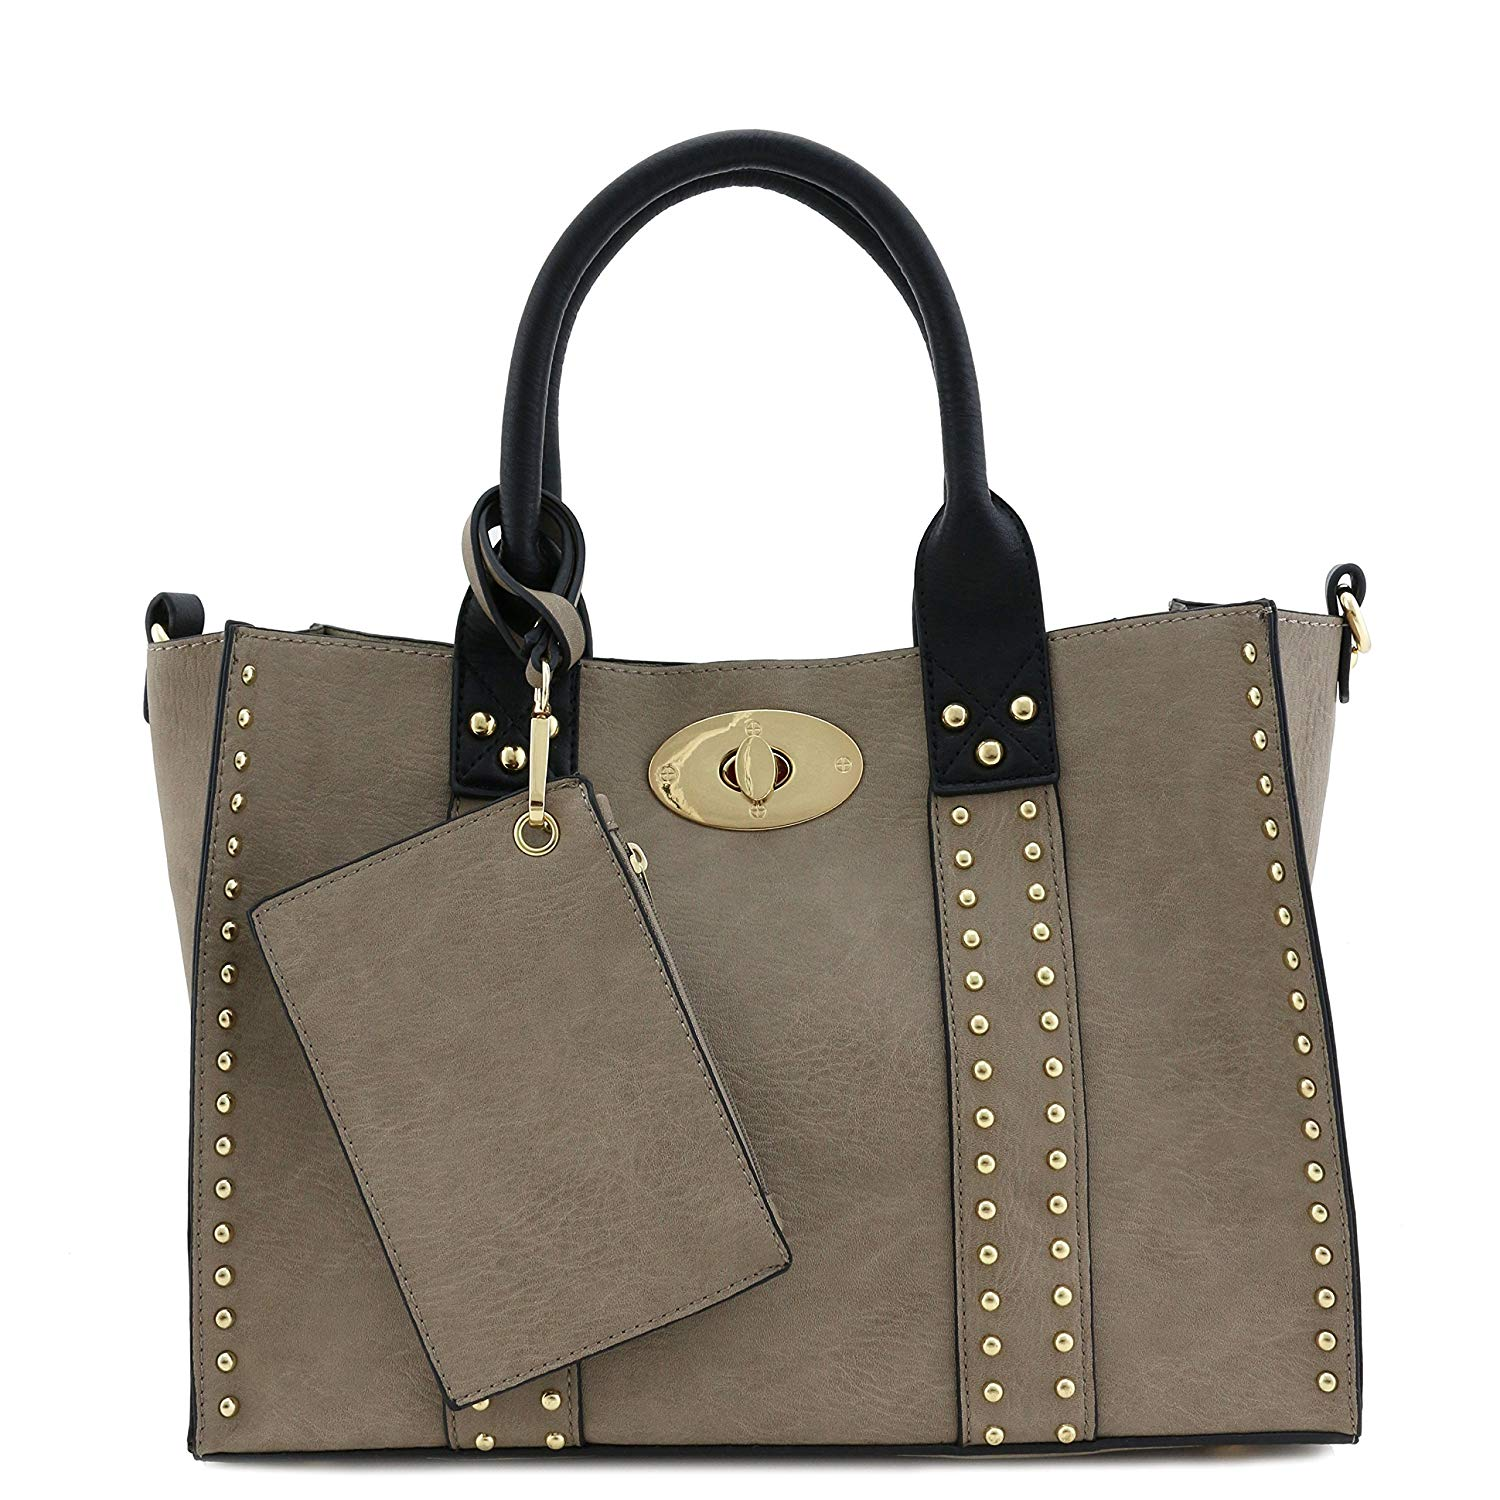 41364c400f Get Quotations · 3pc Set Studded Turn Lock Tote Bag with Crossbody